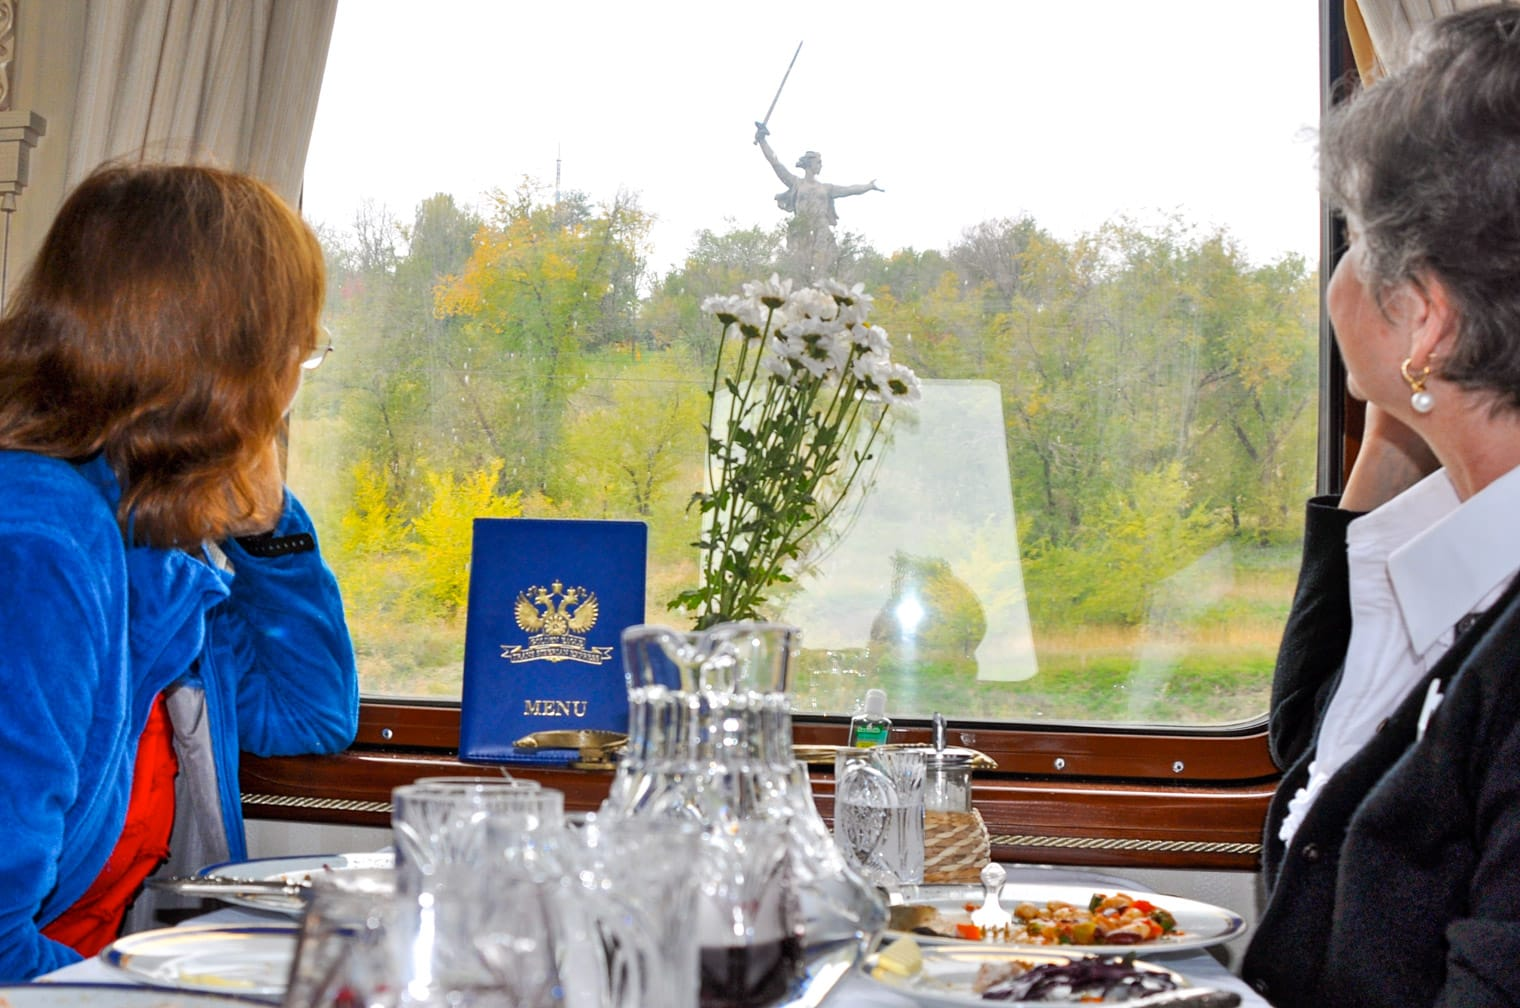 Two women looking out the window on the Golden Eagle train